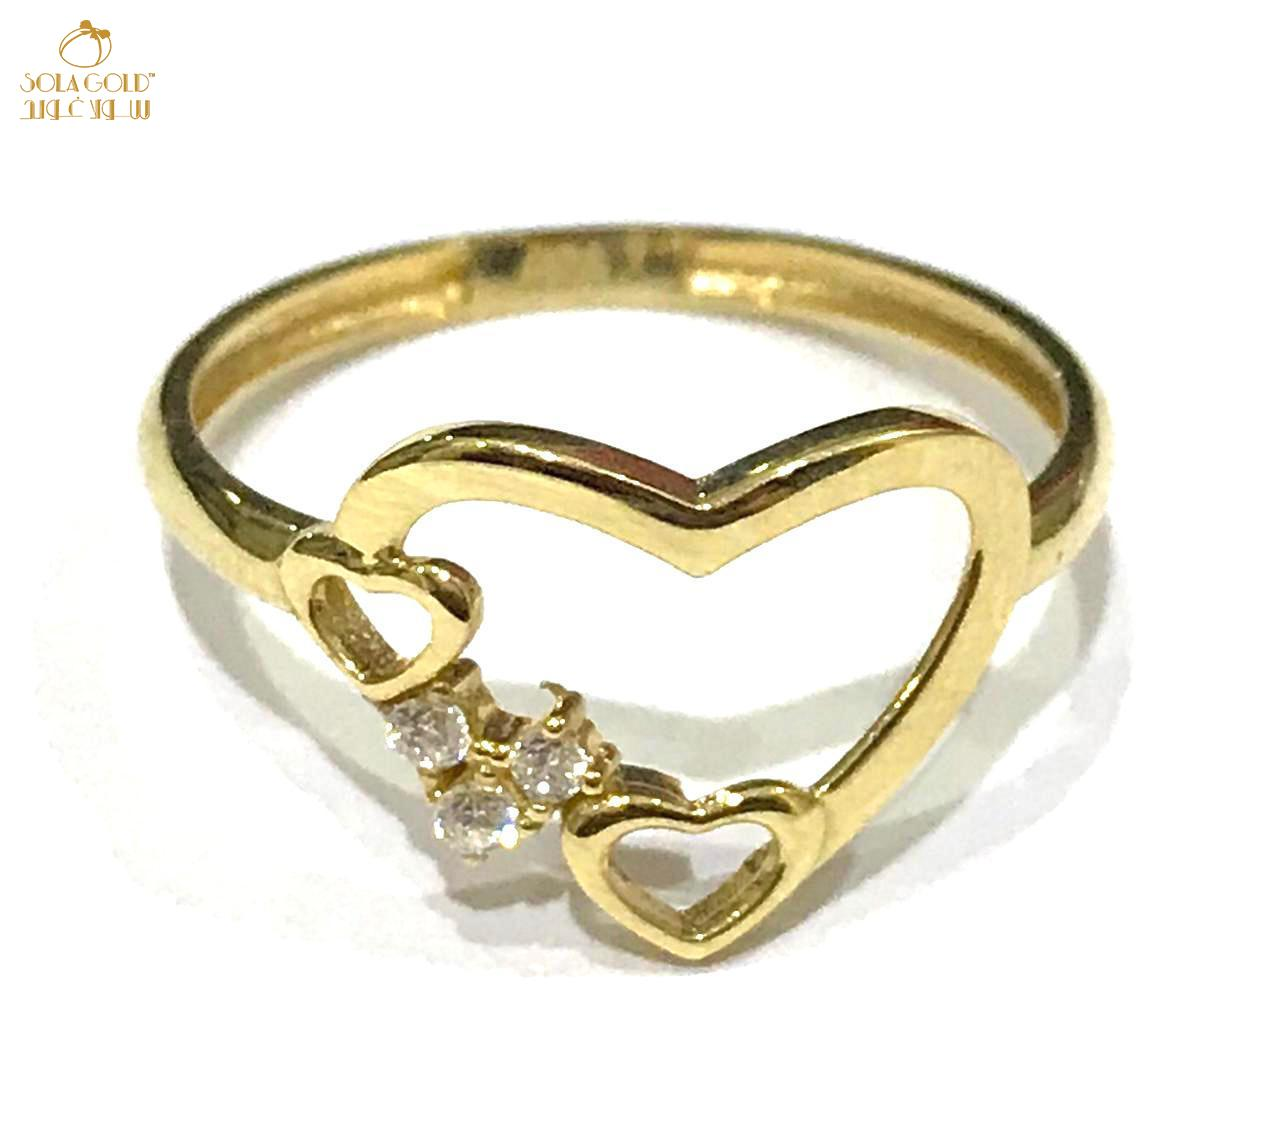 REAL GOLD RING 18K (SIZE: 6.2)